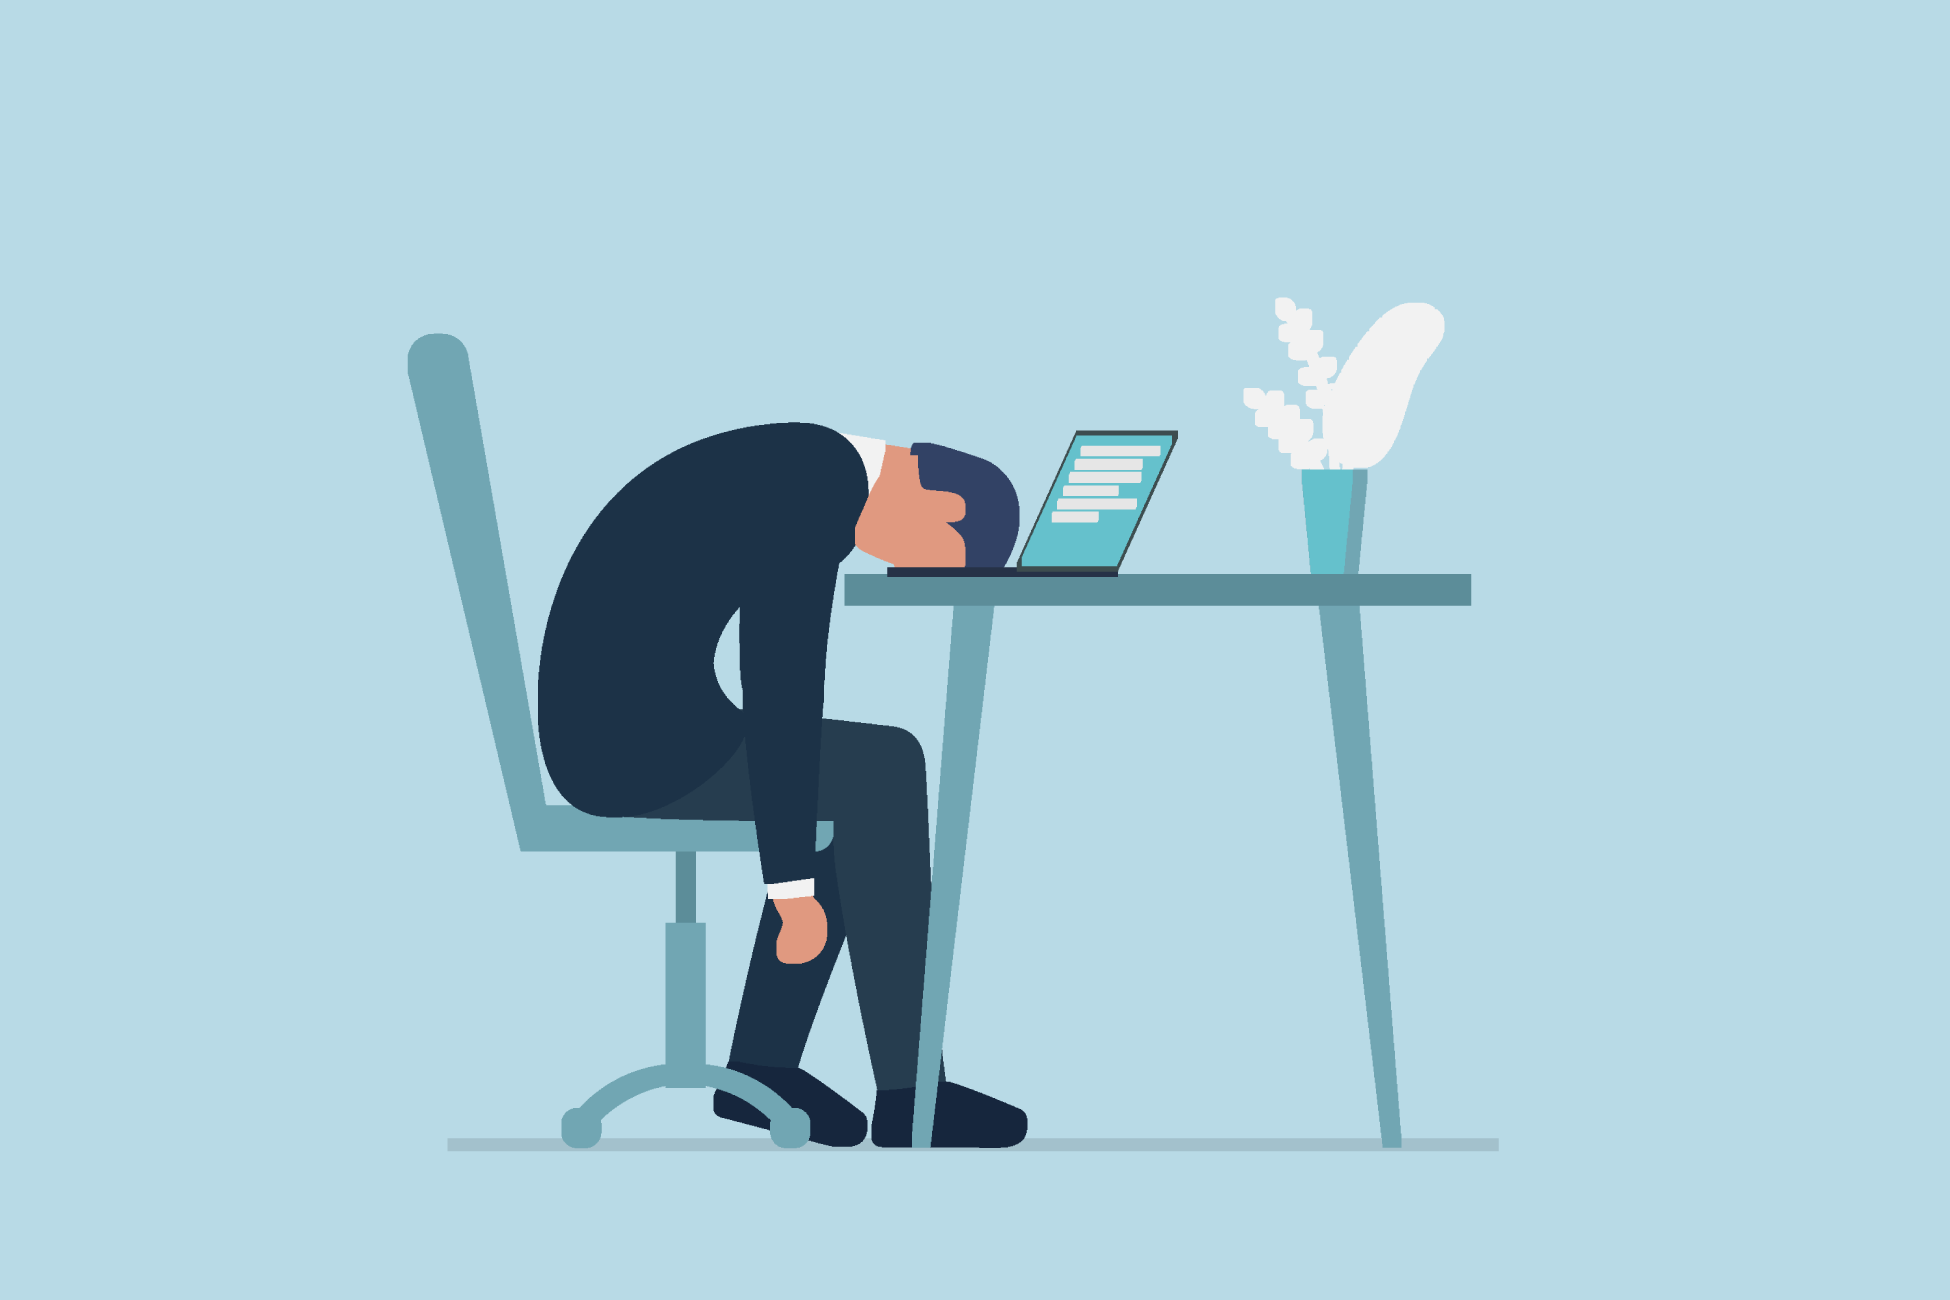 Illustration of a failed entrepreneur face down on his keyboard